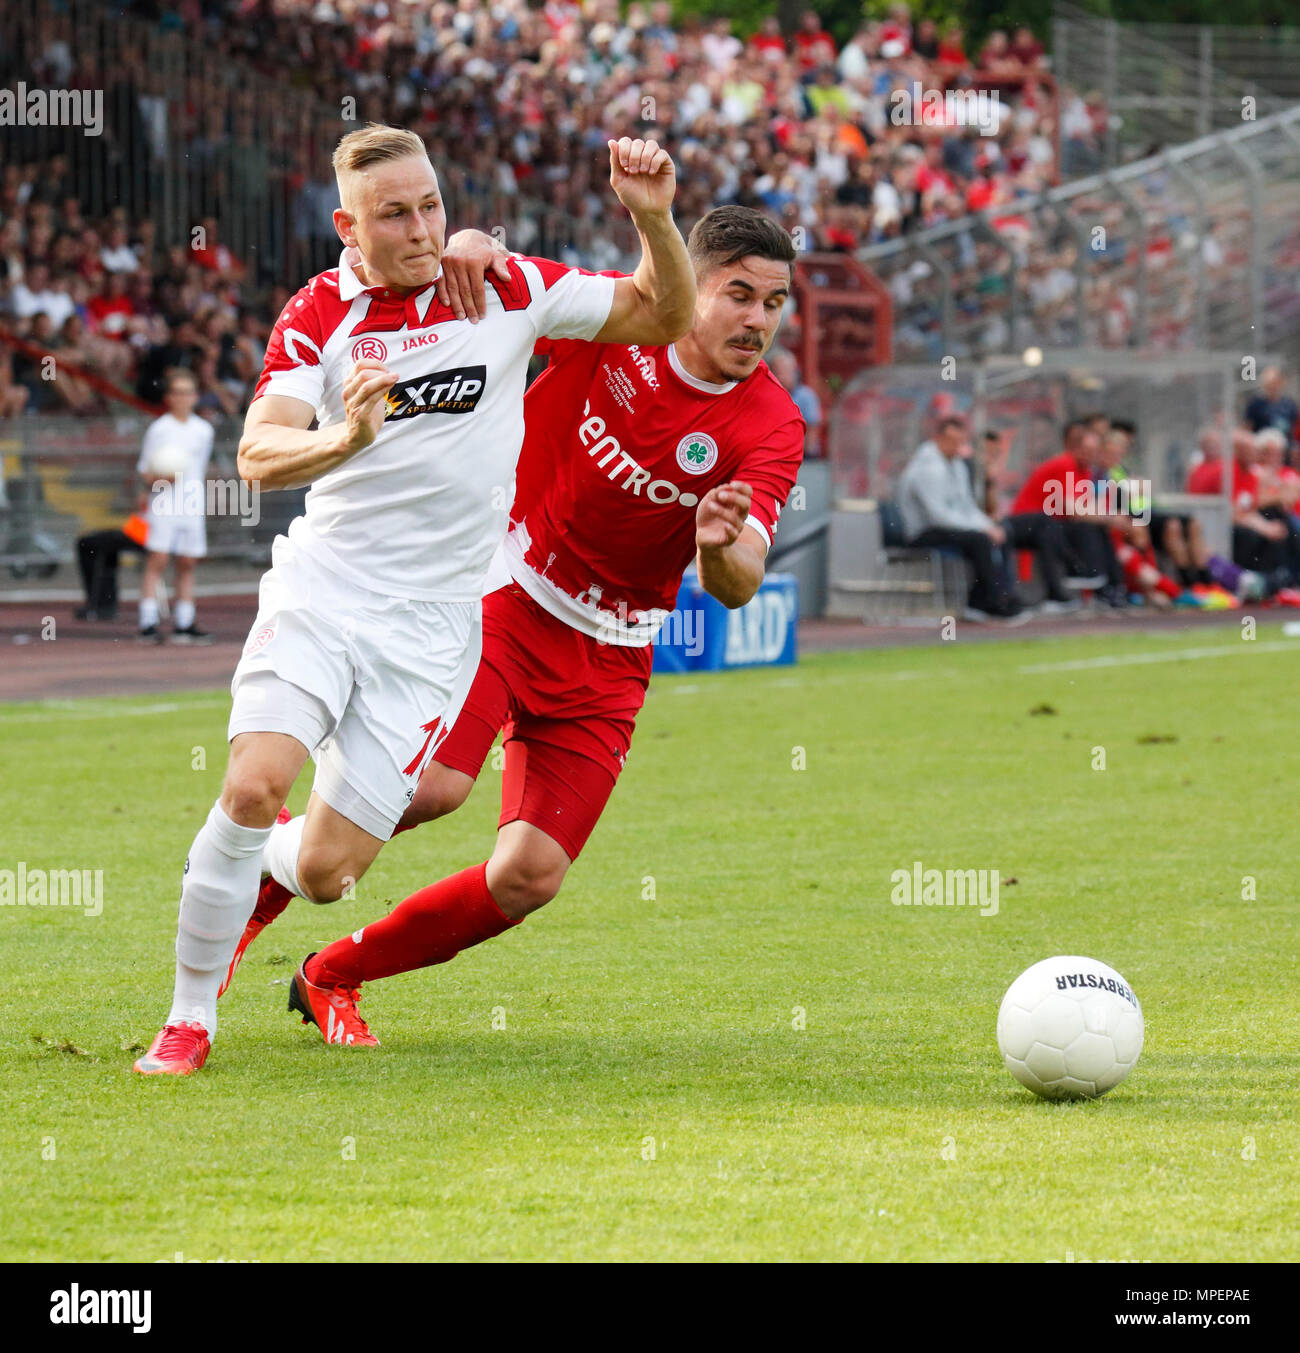 sports, football, Lower Rhine Cup, 2017/2018, final, Rot-Weiss Oberhausen vs Rot Weiss Essen 2:1, Stadium Niederrhein Oberhausen, scene of the match, Kai Proeger (RWE) left and Marvin Lorch (RWO) - Stock Image